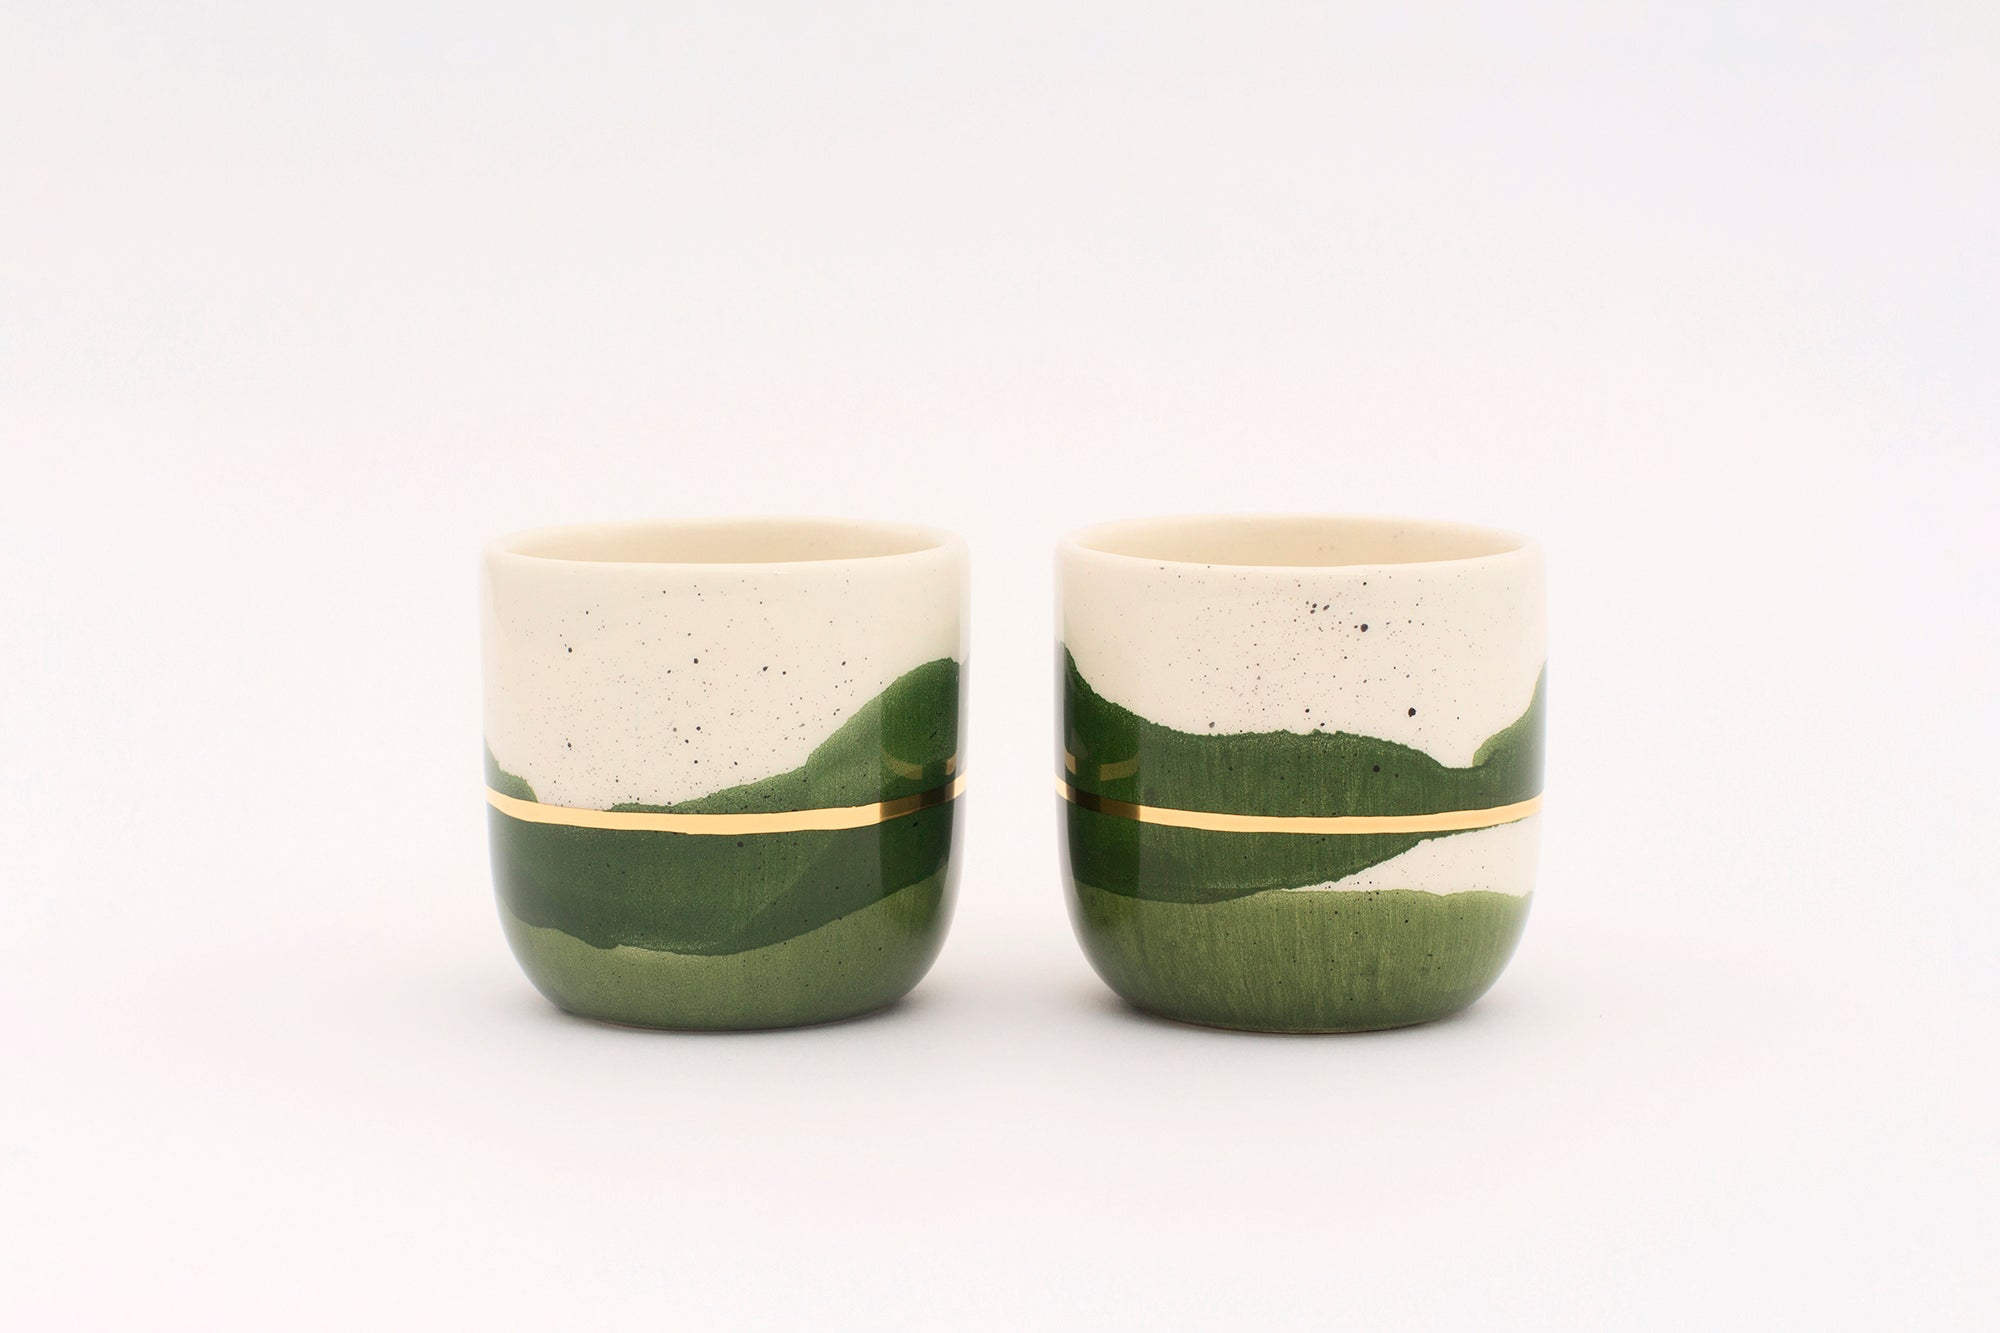 2er-Set Cups, in diversen Grössen in Forest Green with Golden Lining - O I A  ceramics